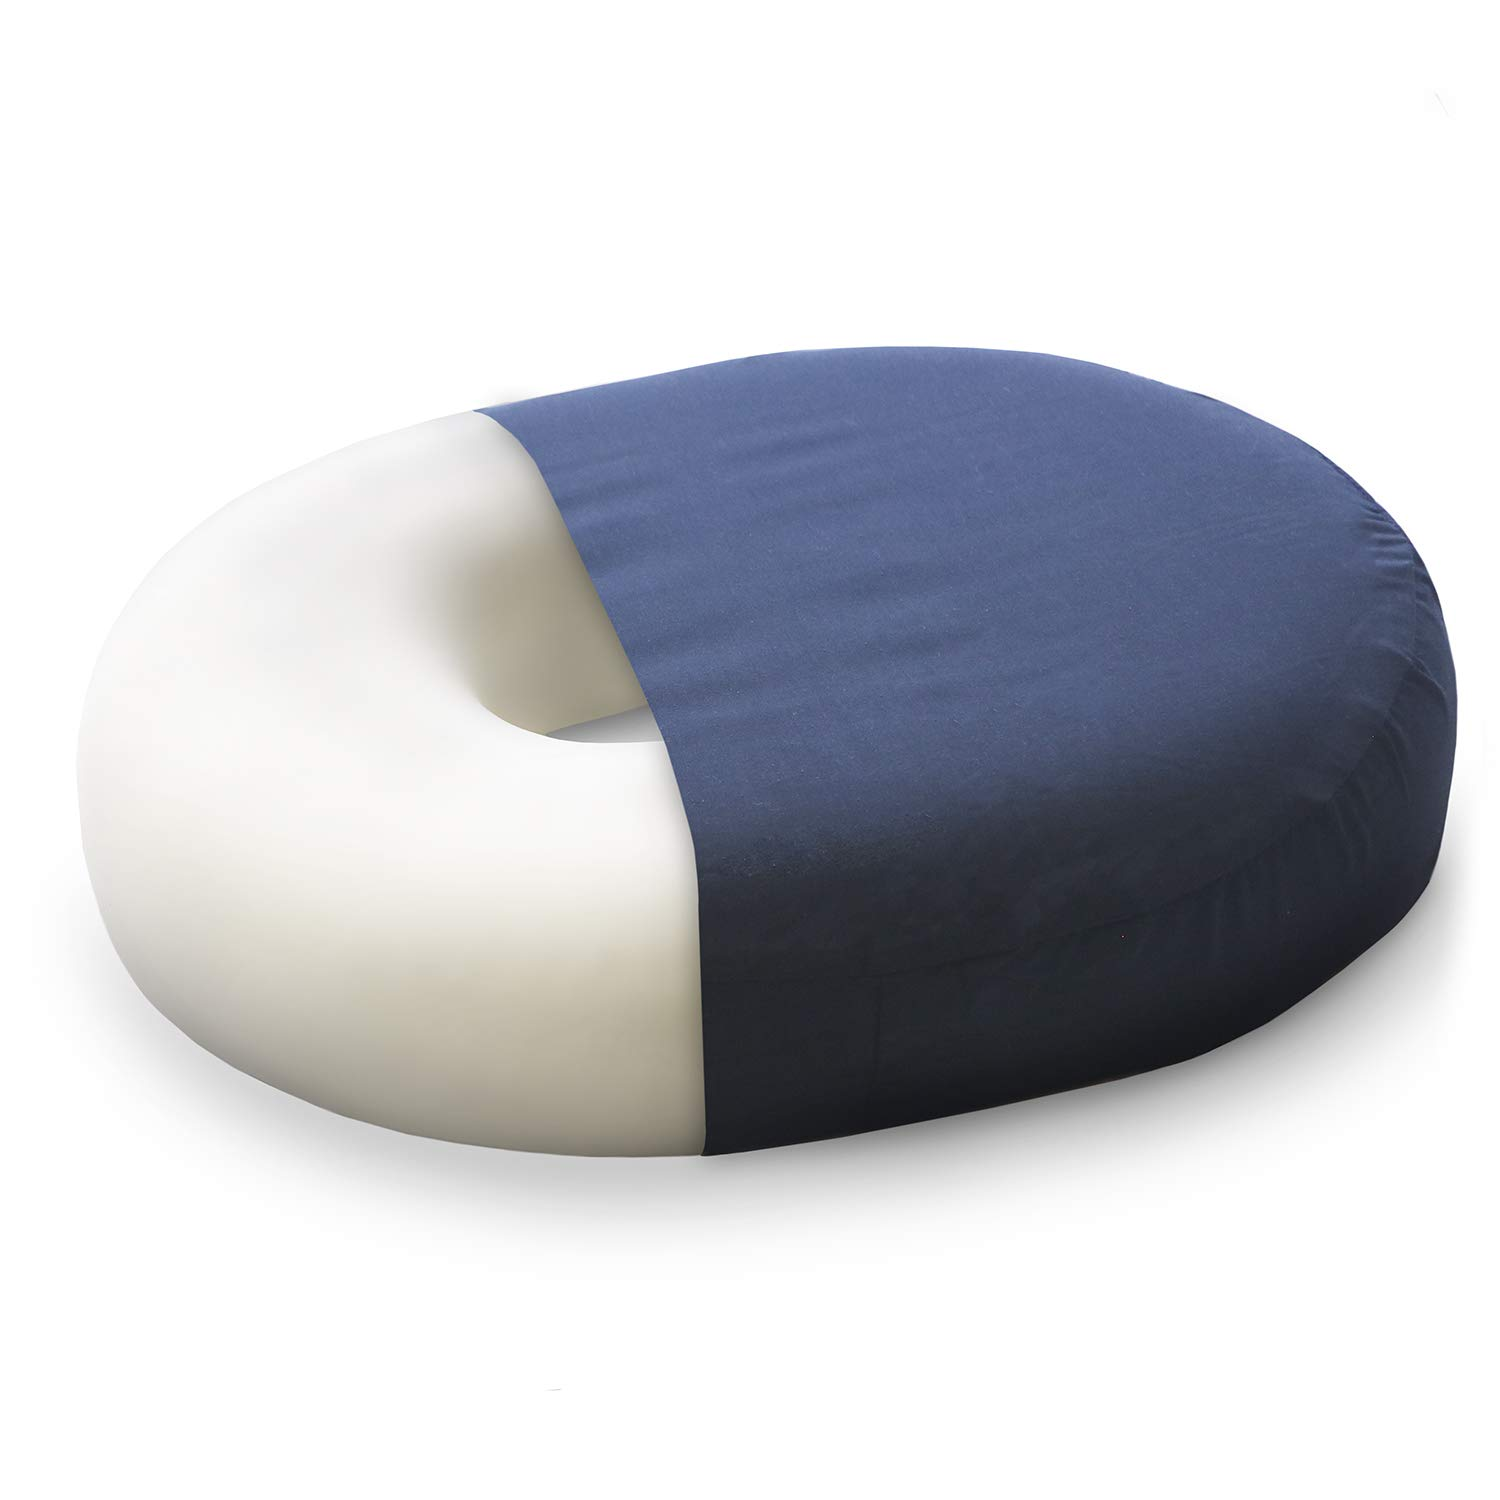 DMI Donut Seat Cushion All-Day Comfort Pillow for Hemorrhoids, Prostate, Pregnancy